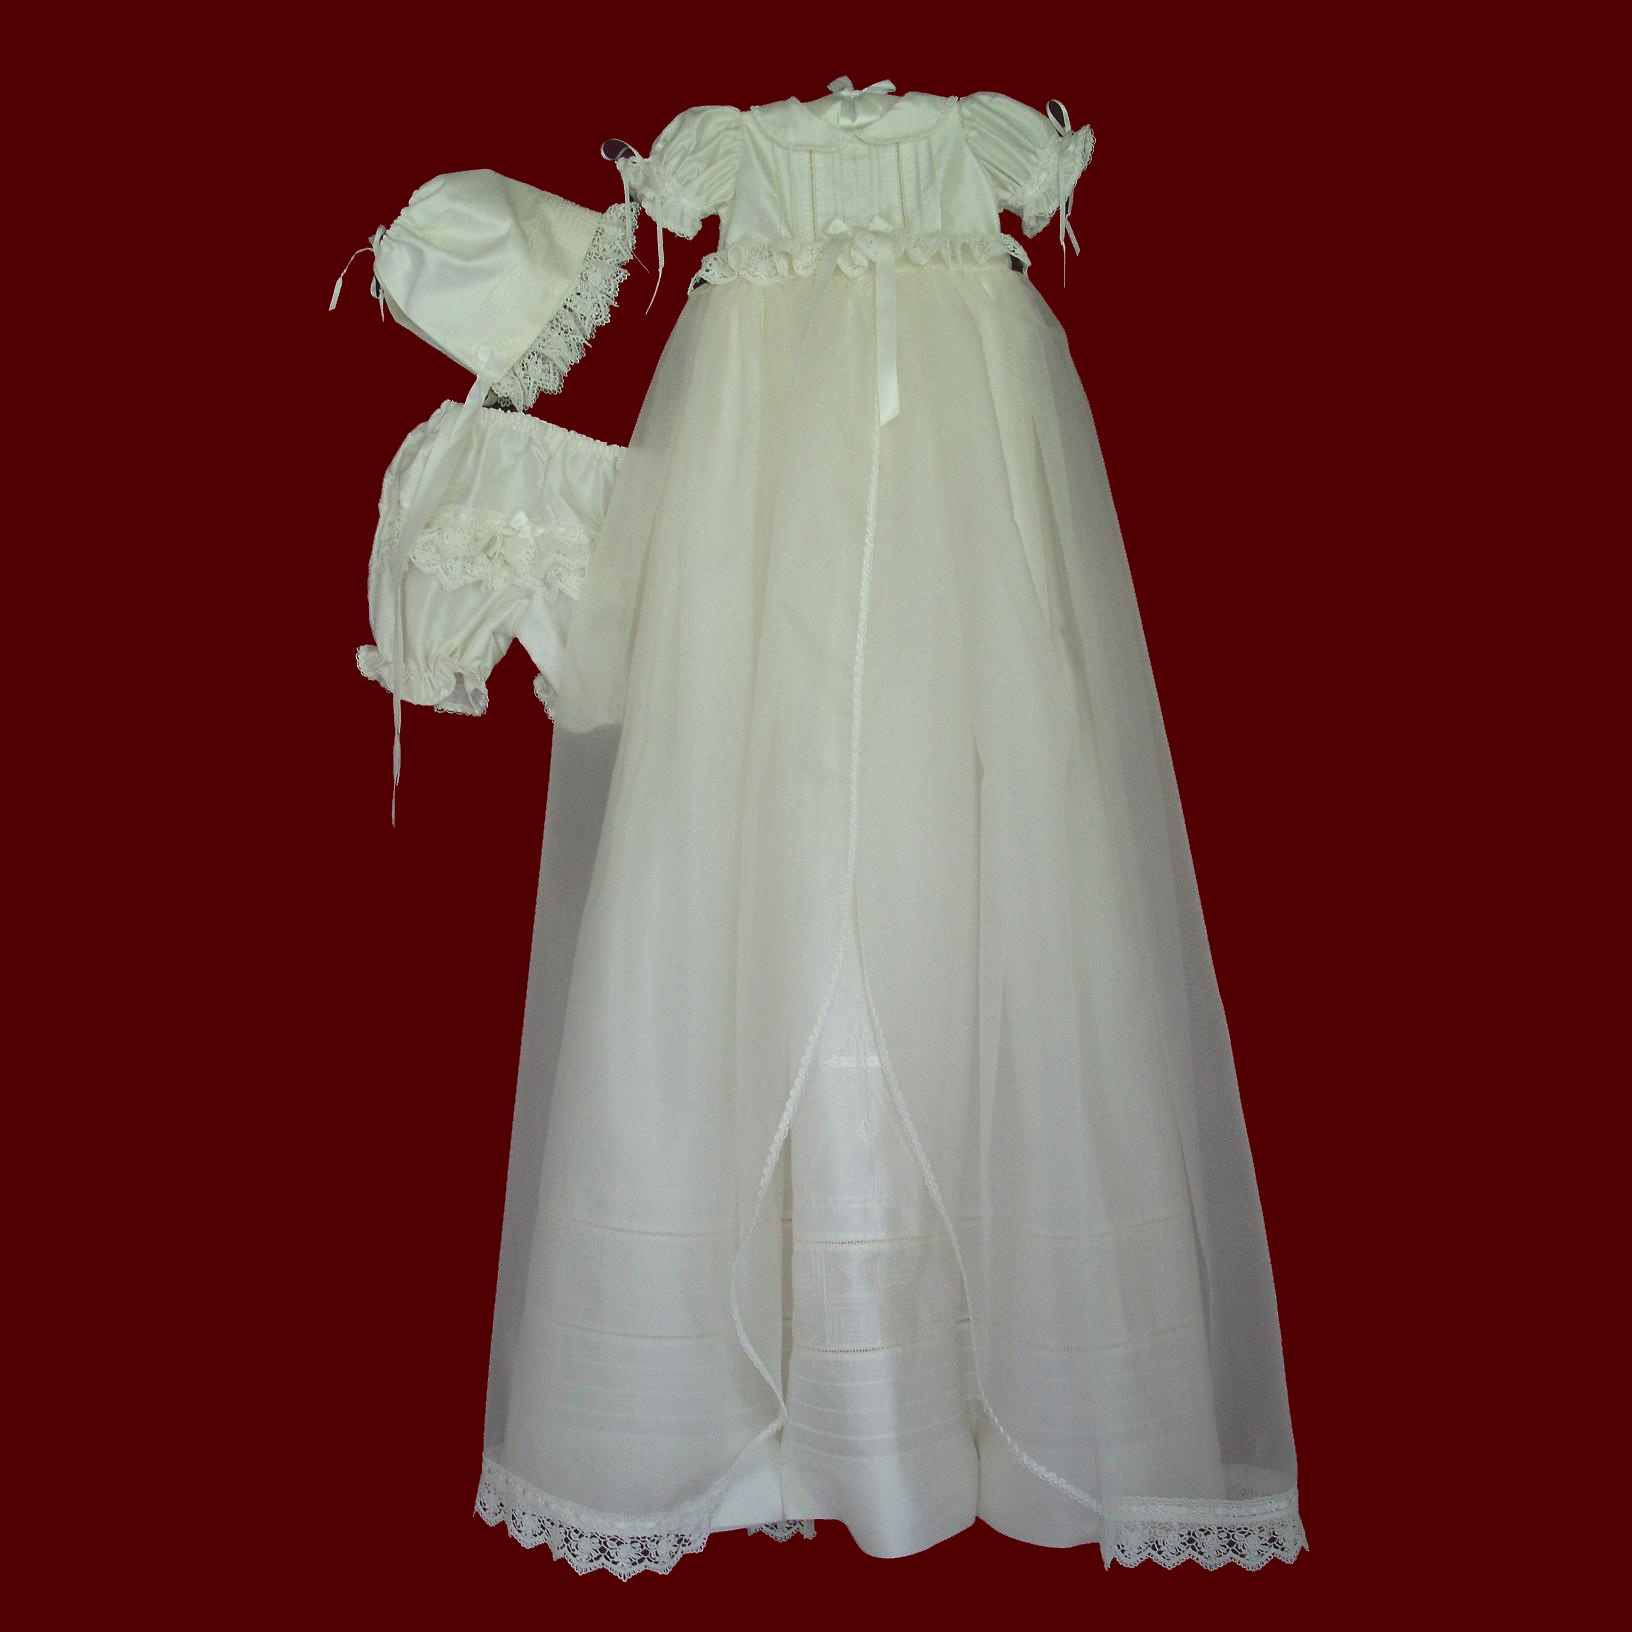 Girls Overlay Detachable Gown With Dress, Panties & Bonnet